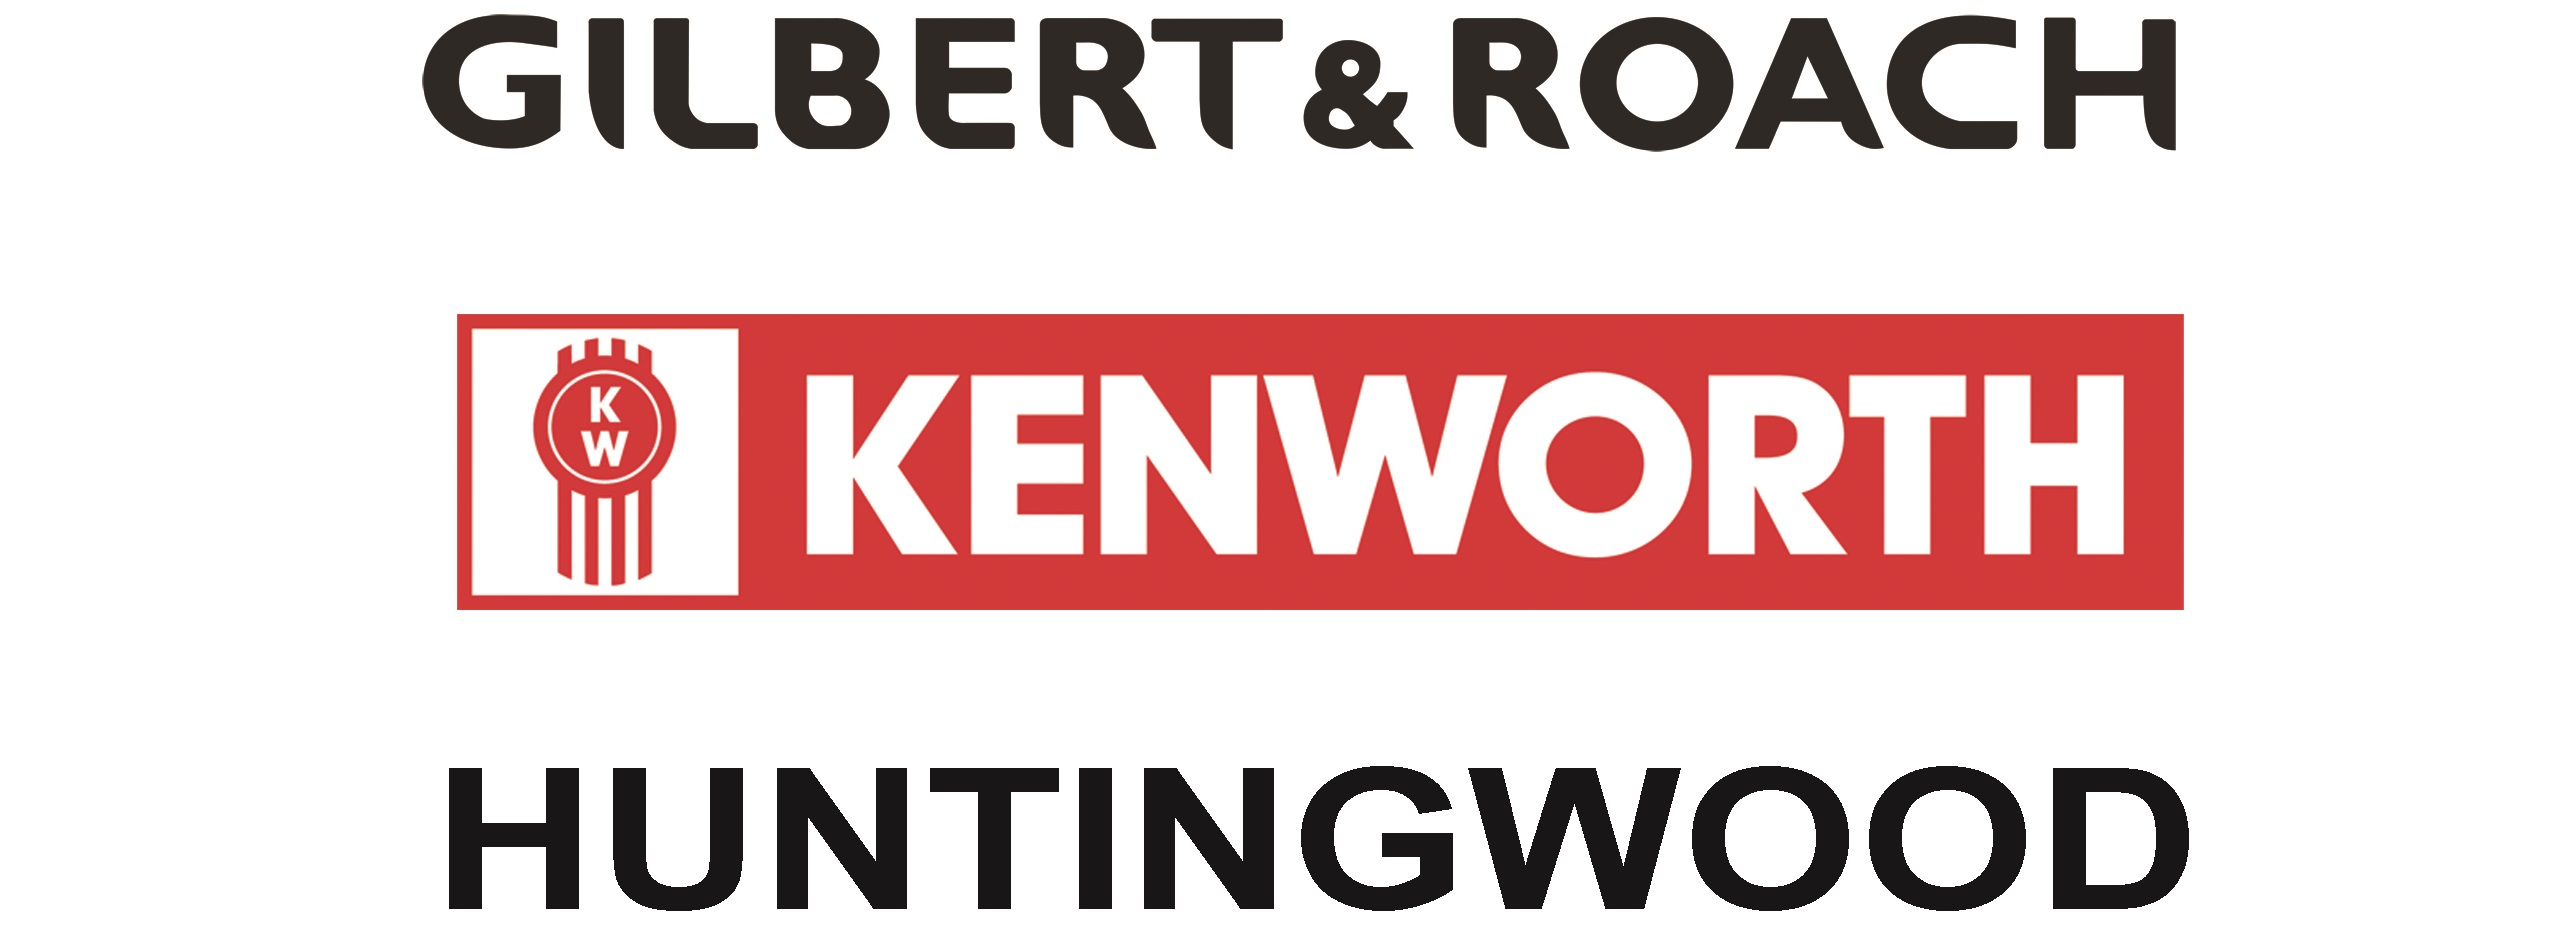 Gilbert & Roach KENWORTH HUNTINGWOOD